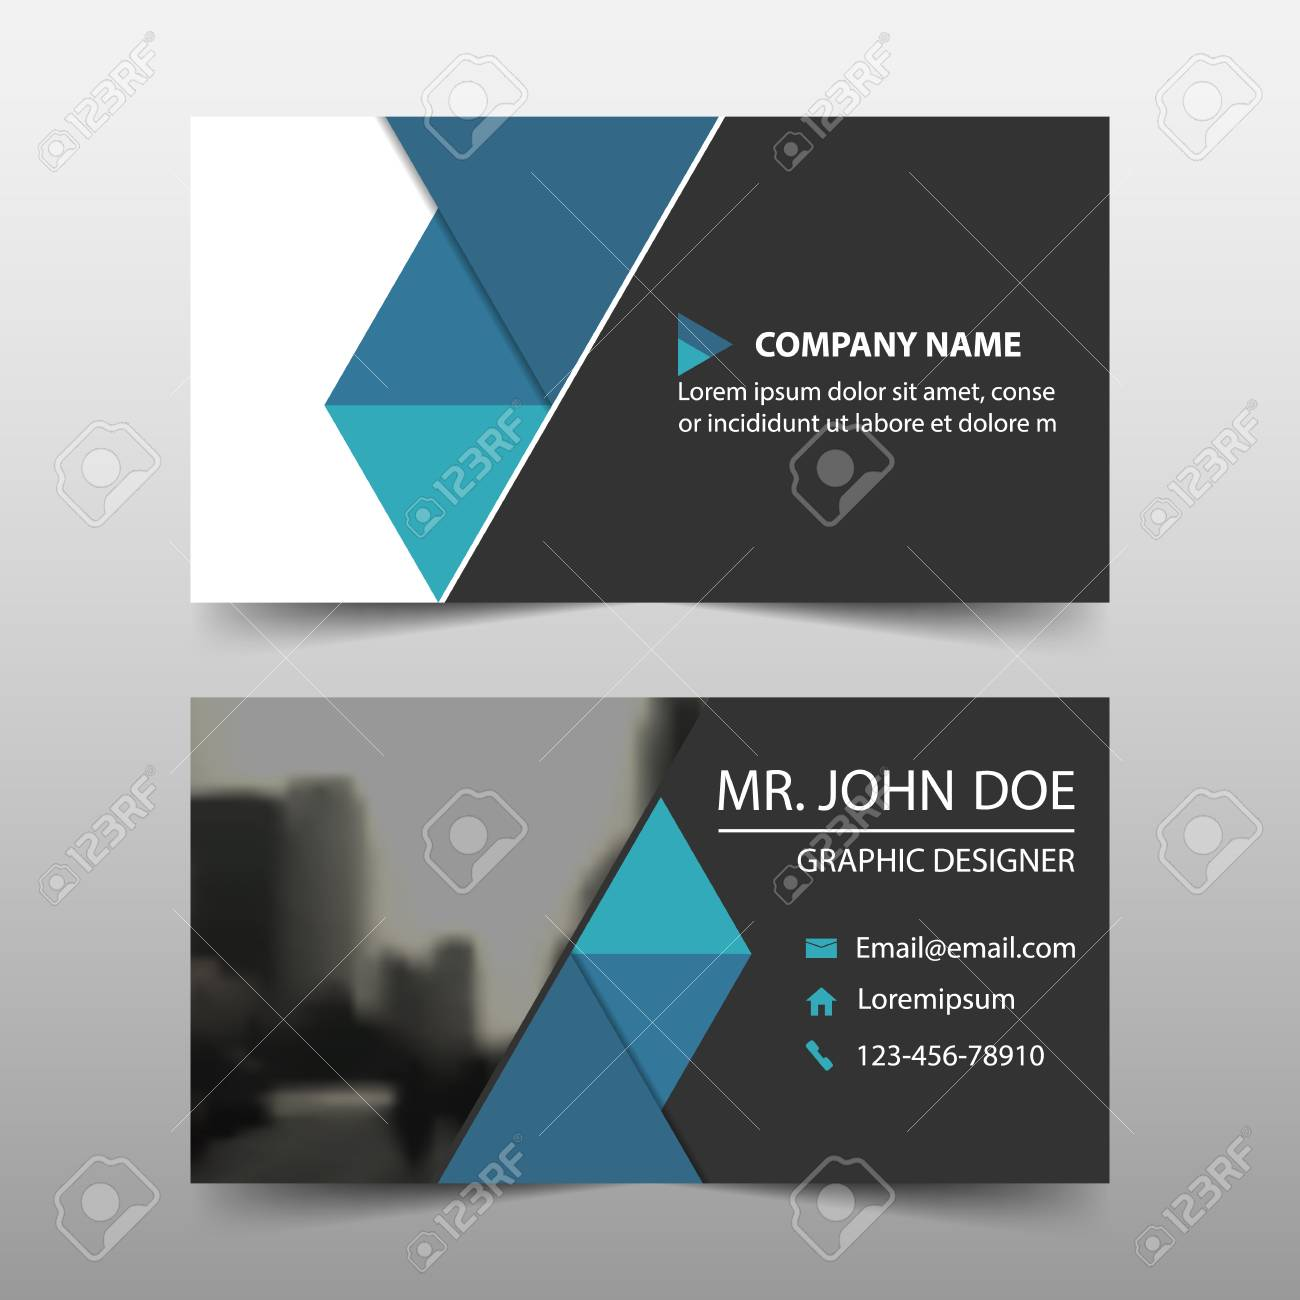 Blue Triangle Corporate Business Card Name Template Horizontal Simple Clean Layout Design